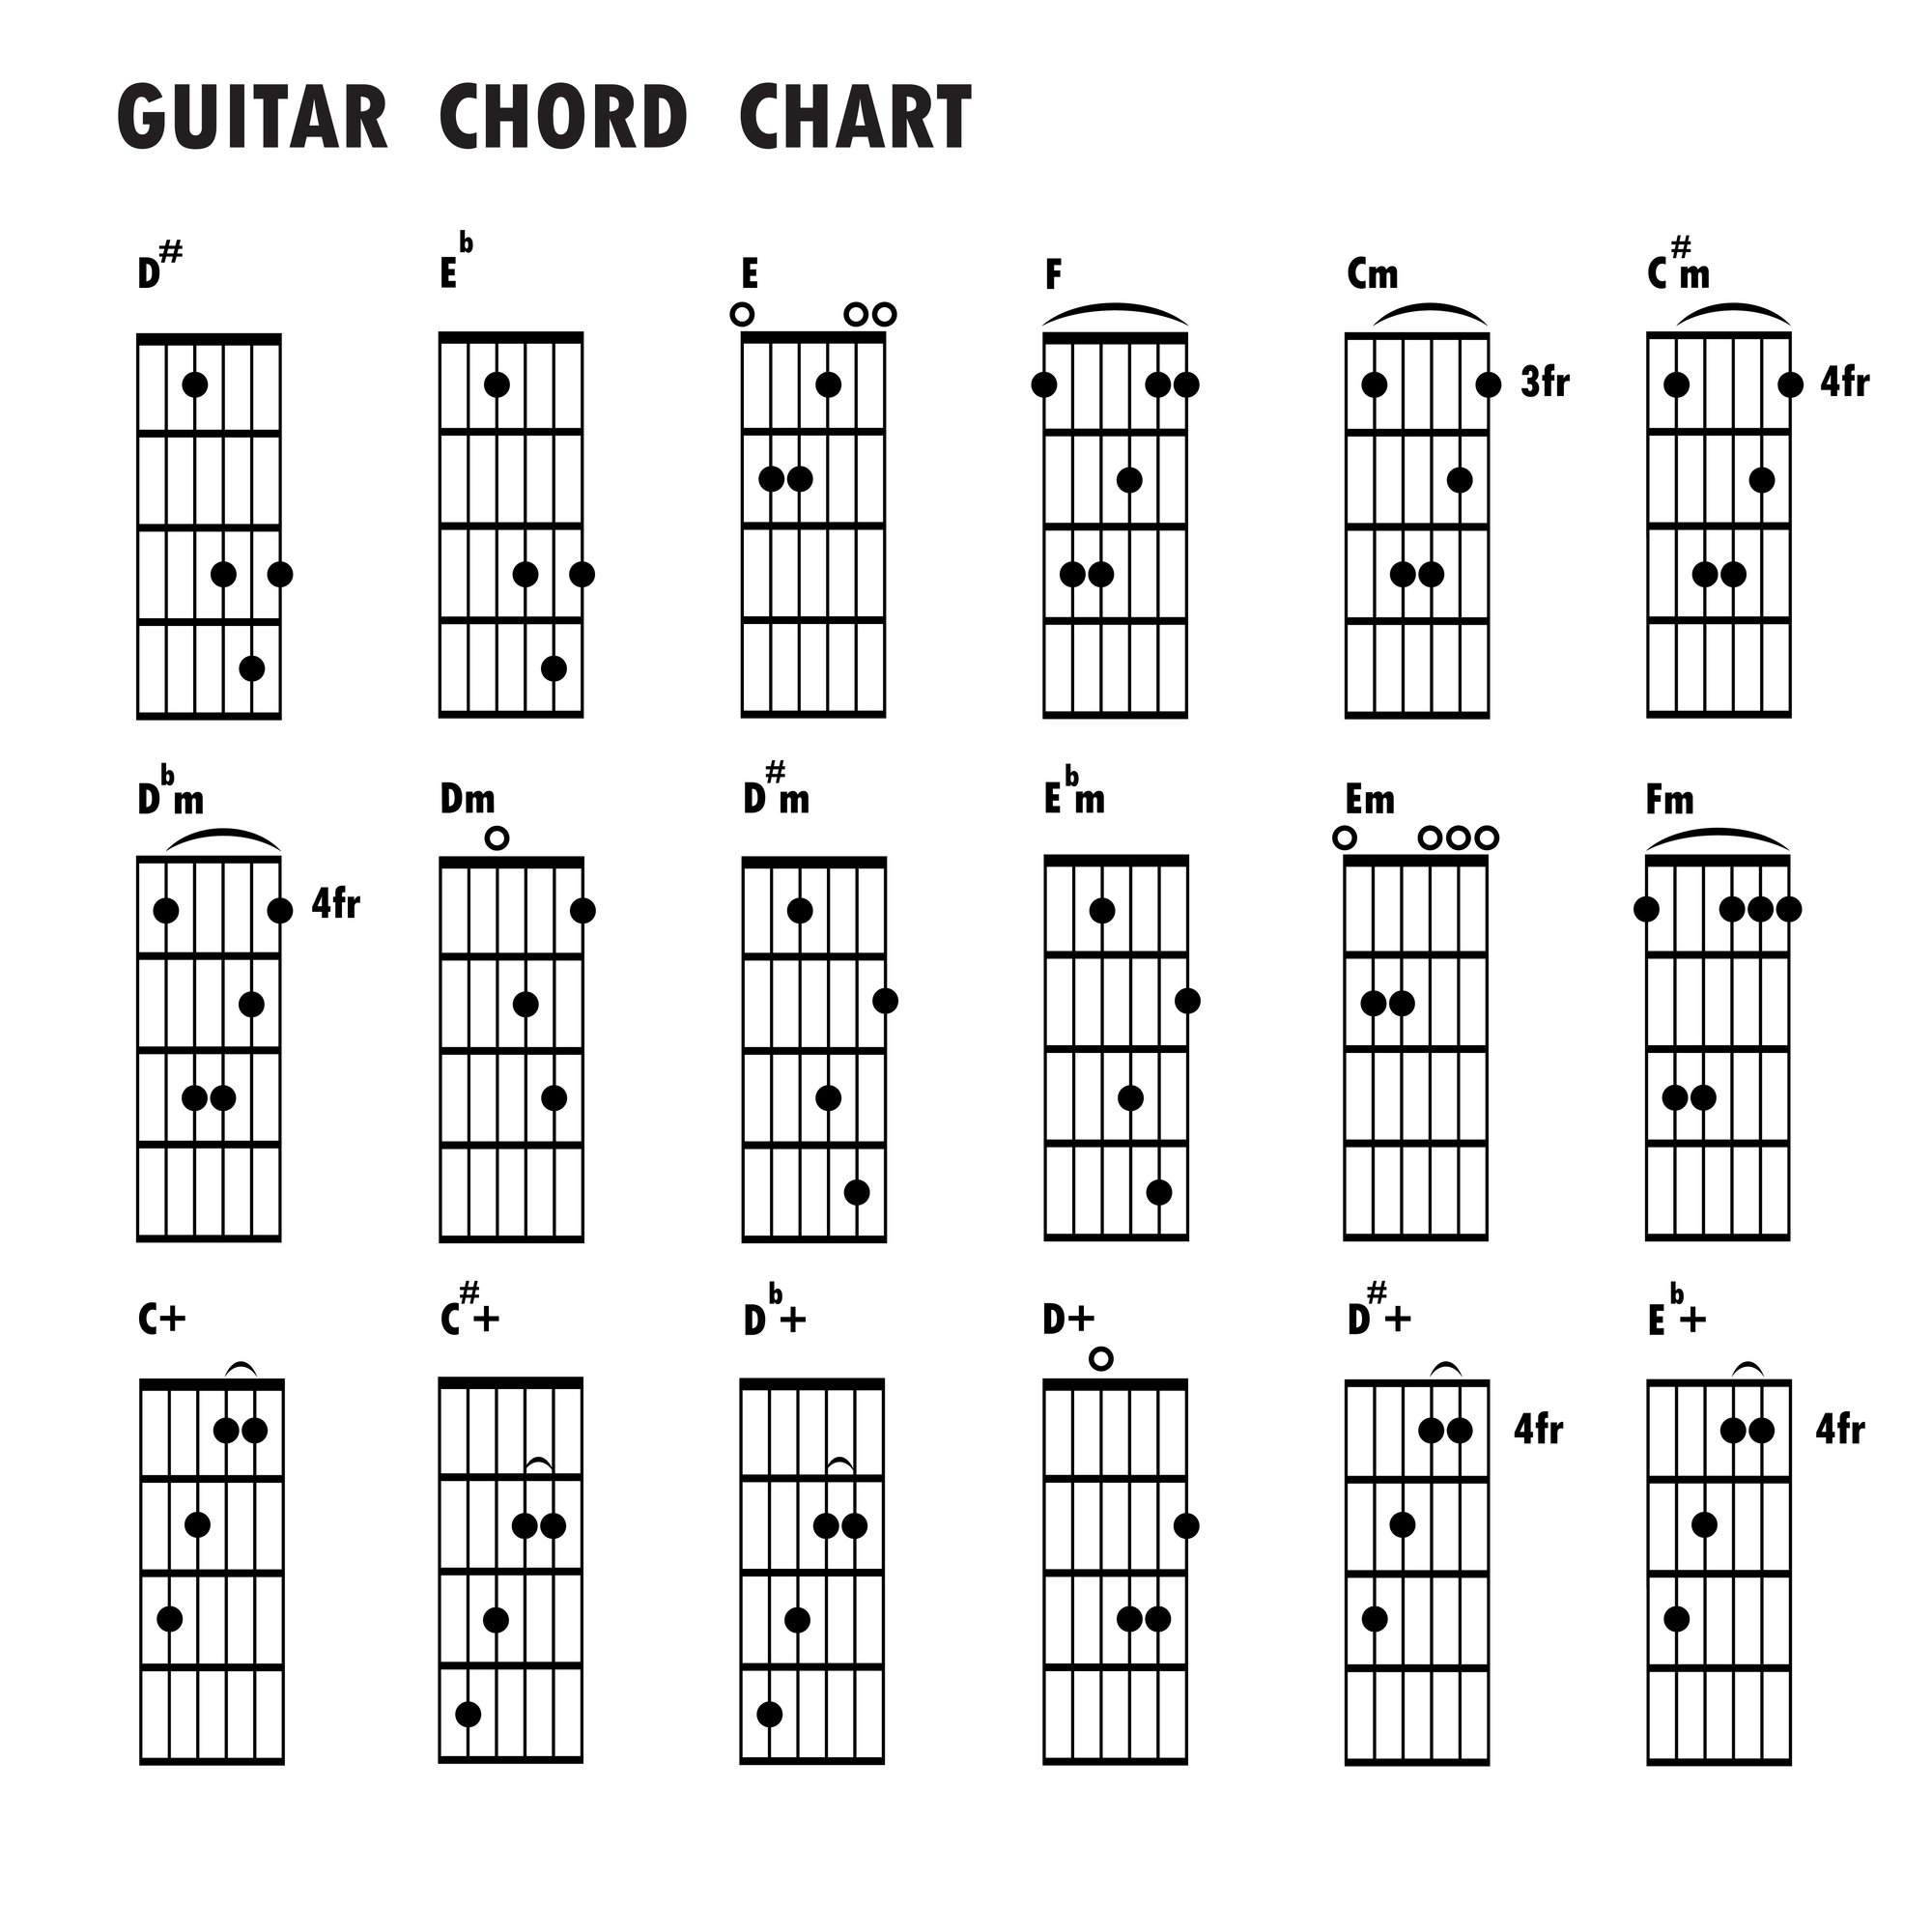 C M Guitar Chord Count On Me Guitar Chords Chart 2019